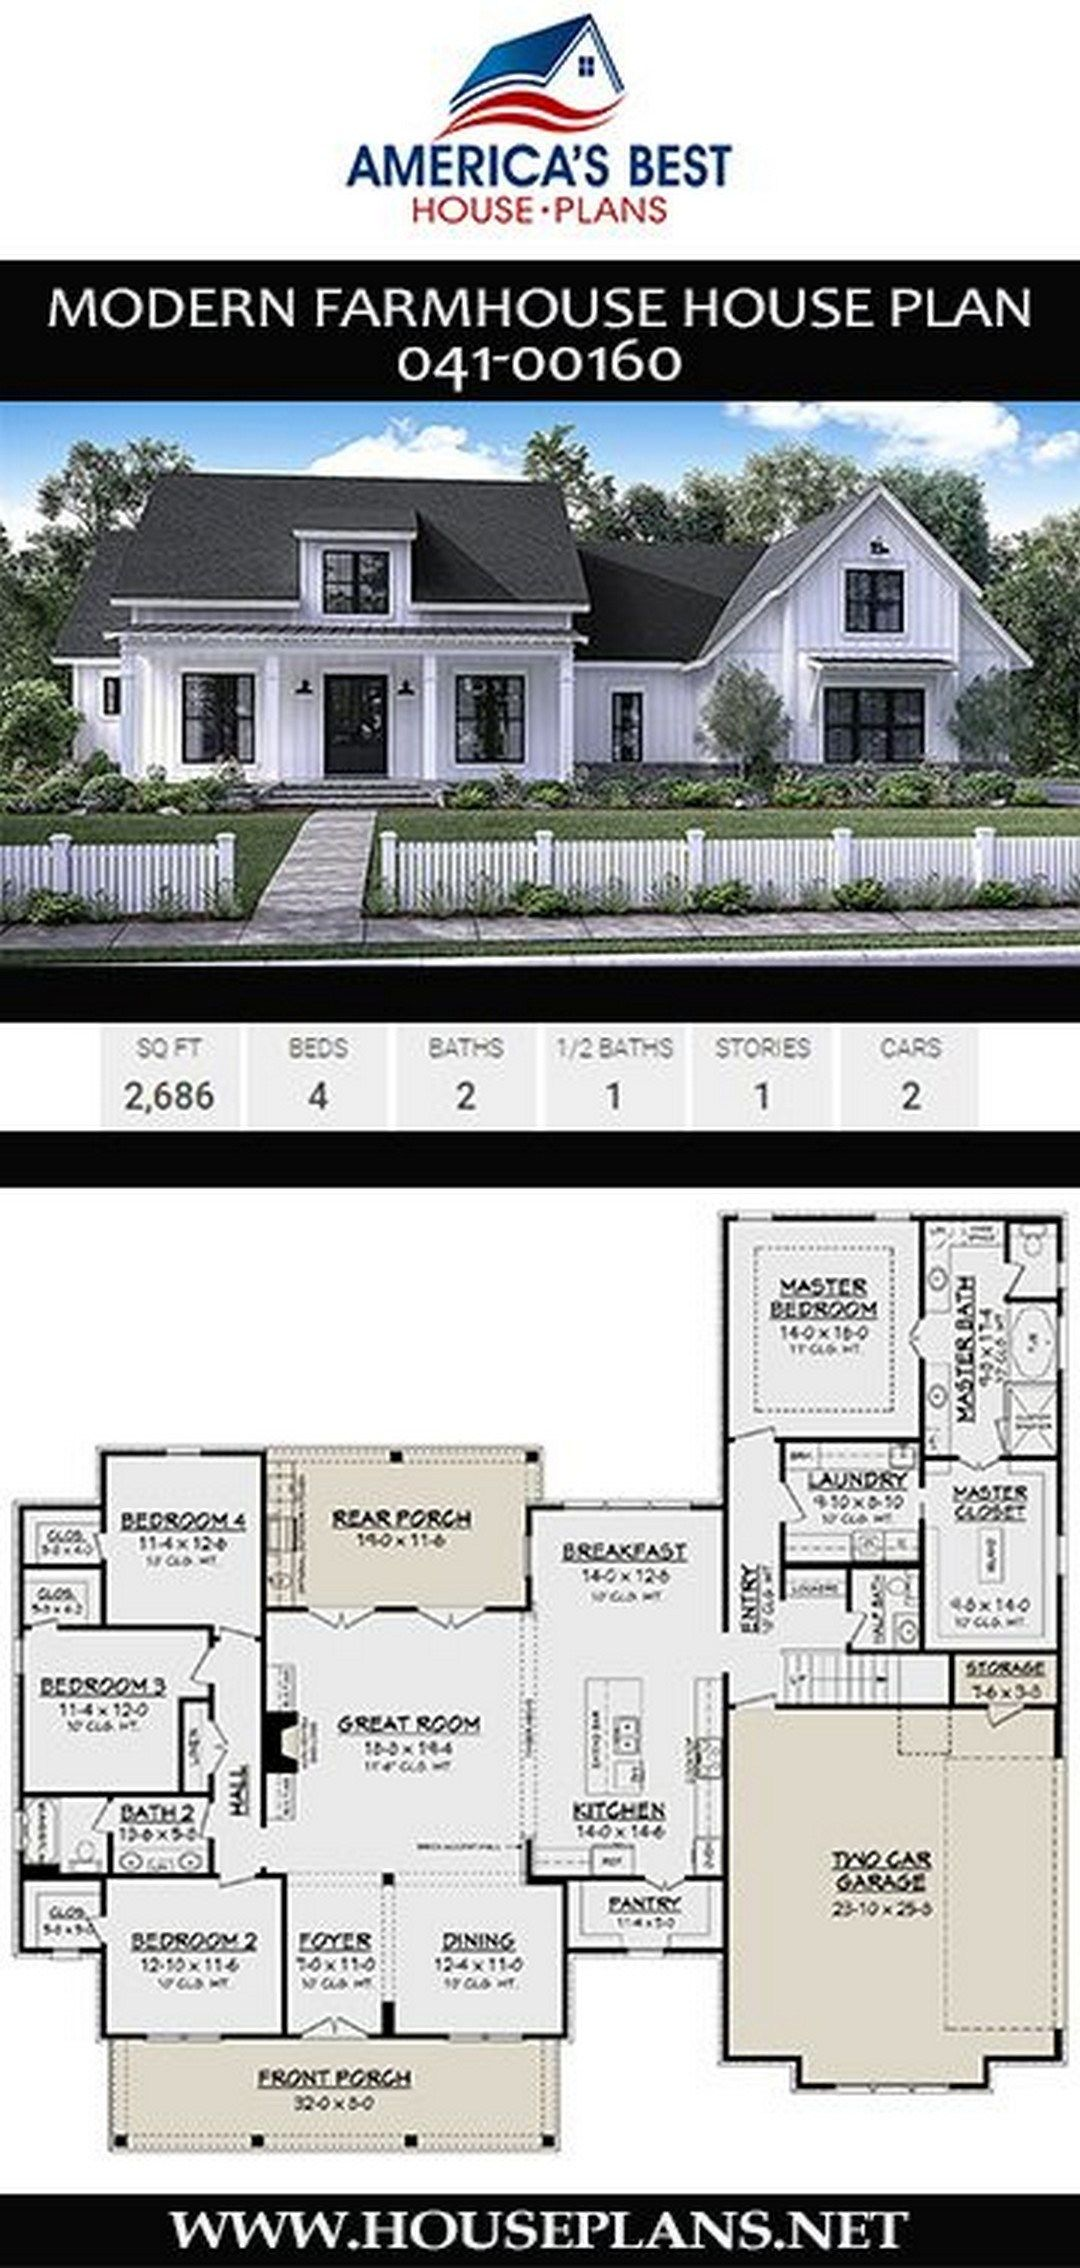 47 Best Modern Farmhouse Floor Plans That Won People Choice Farmhouse Room Modern Farmhouse Plans Modern Farmhouse Floors House Plans Farmhouse